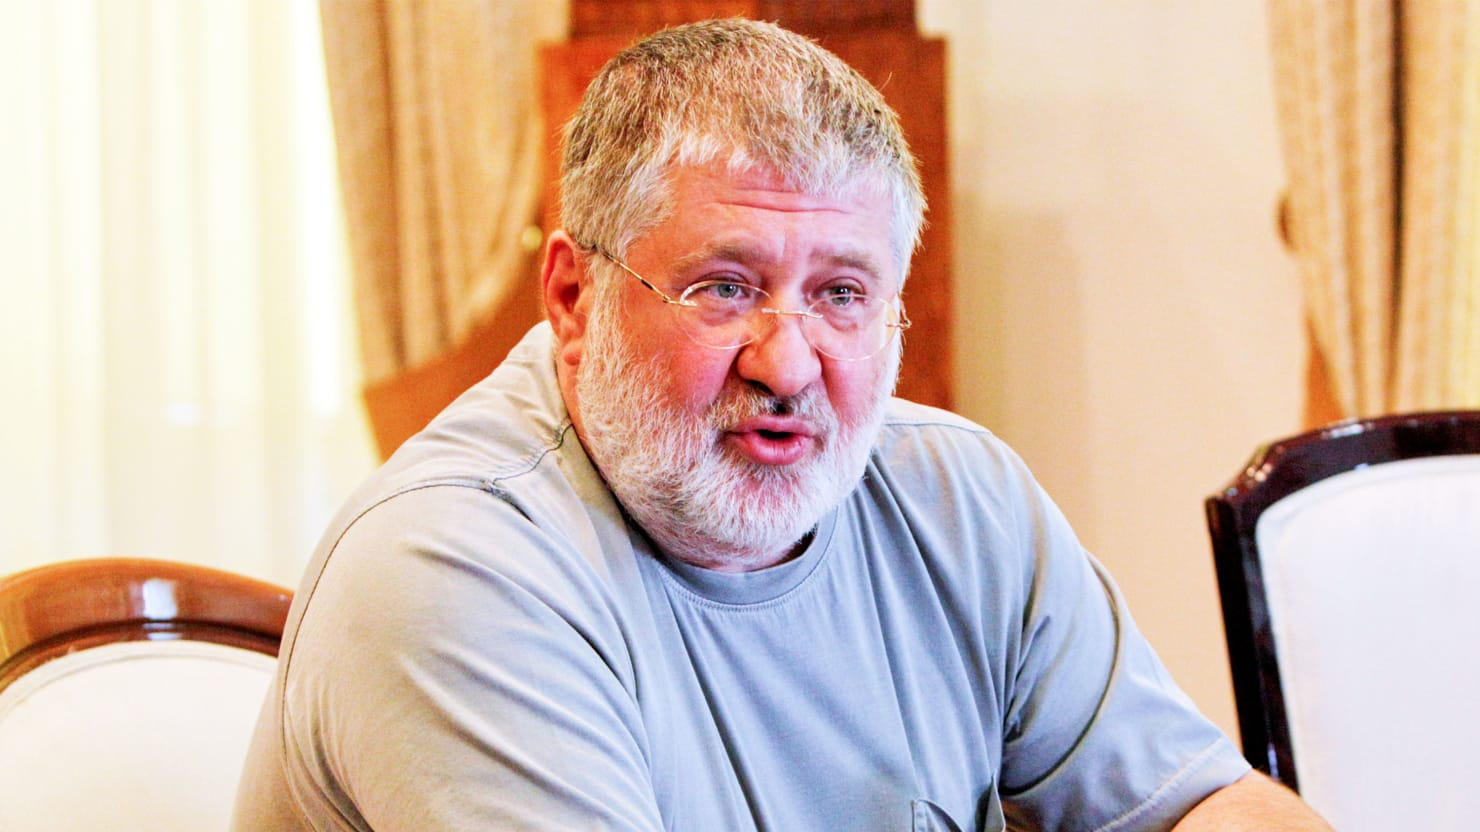 Exclusive: Billionaire Ukrainian Oligarch Ihor Kolomoisky Under Investigation by FBI